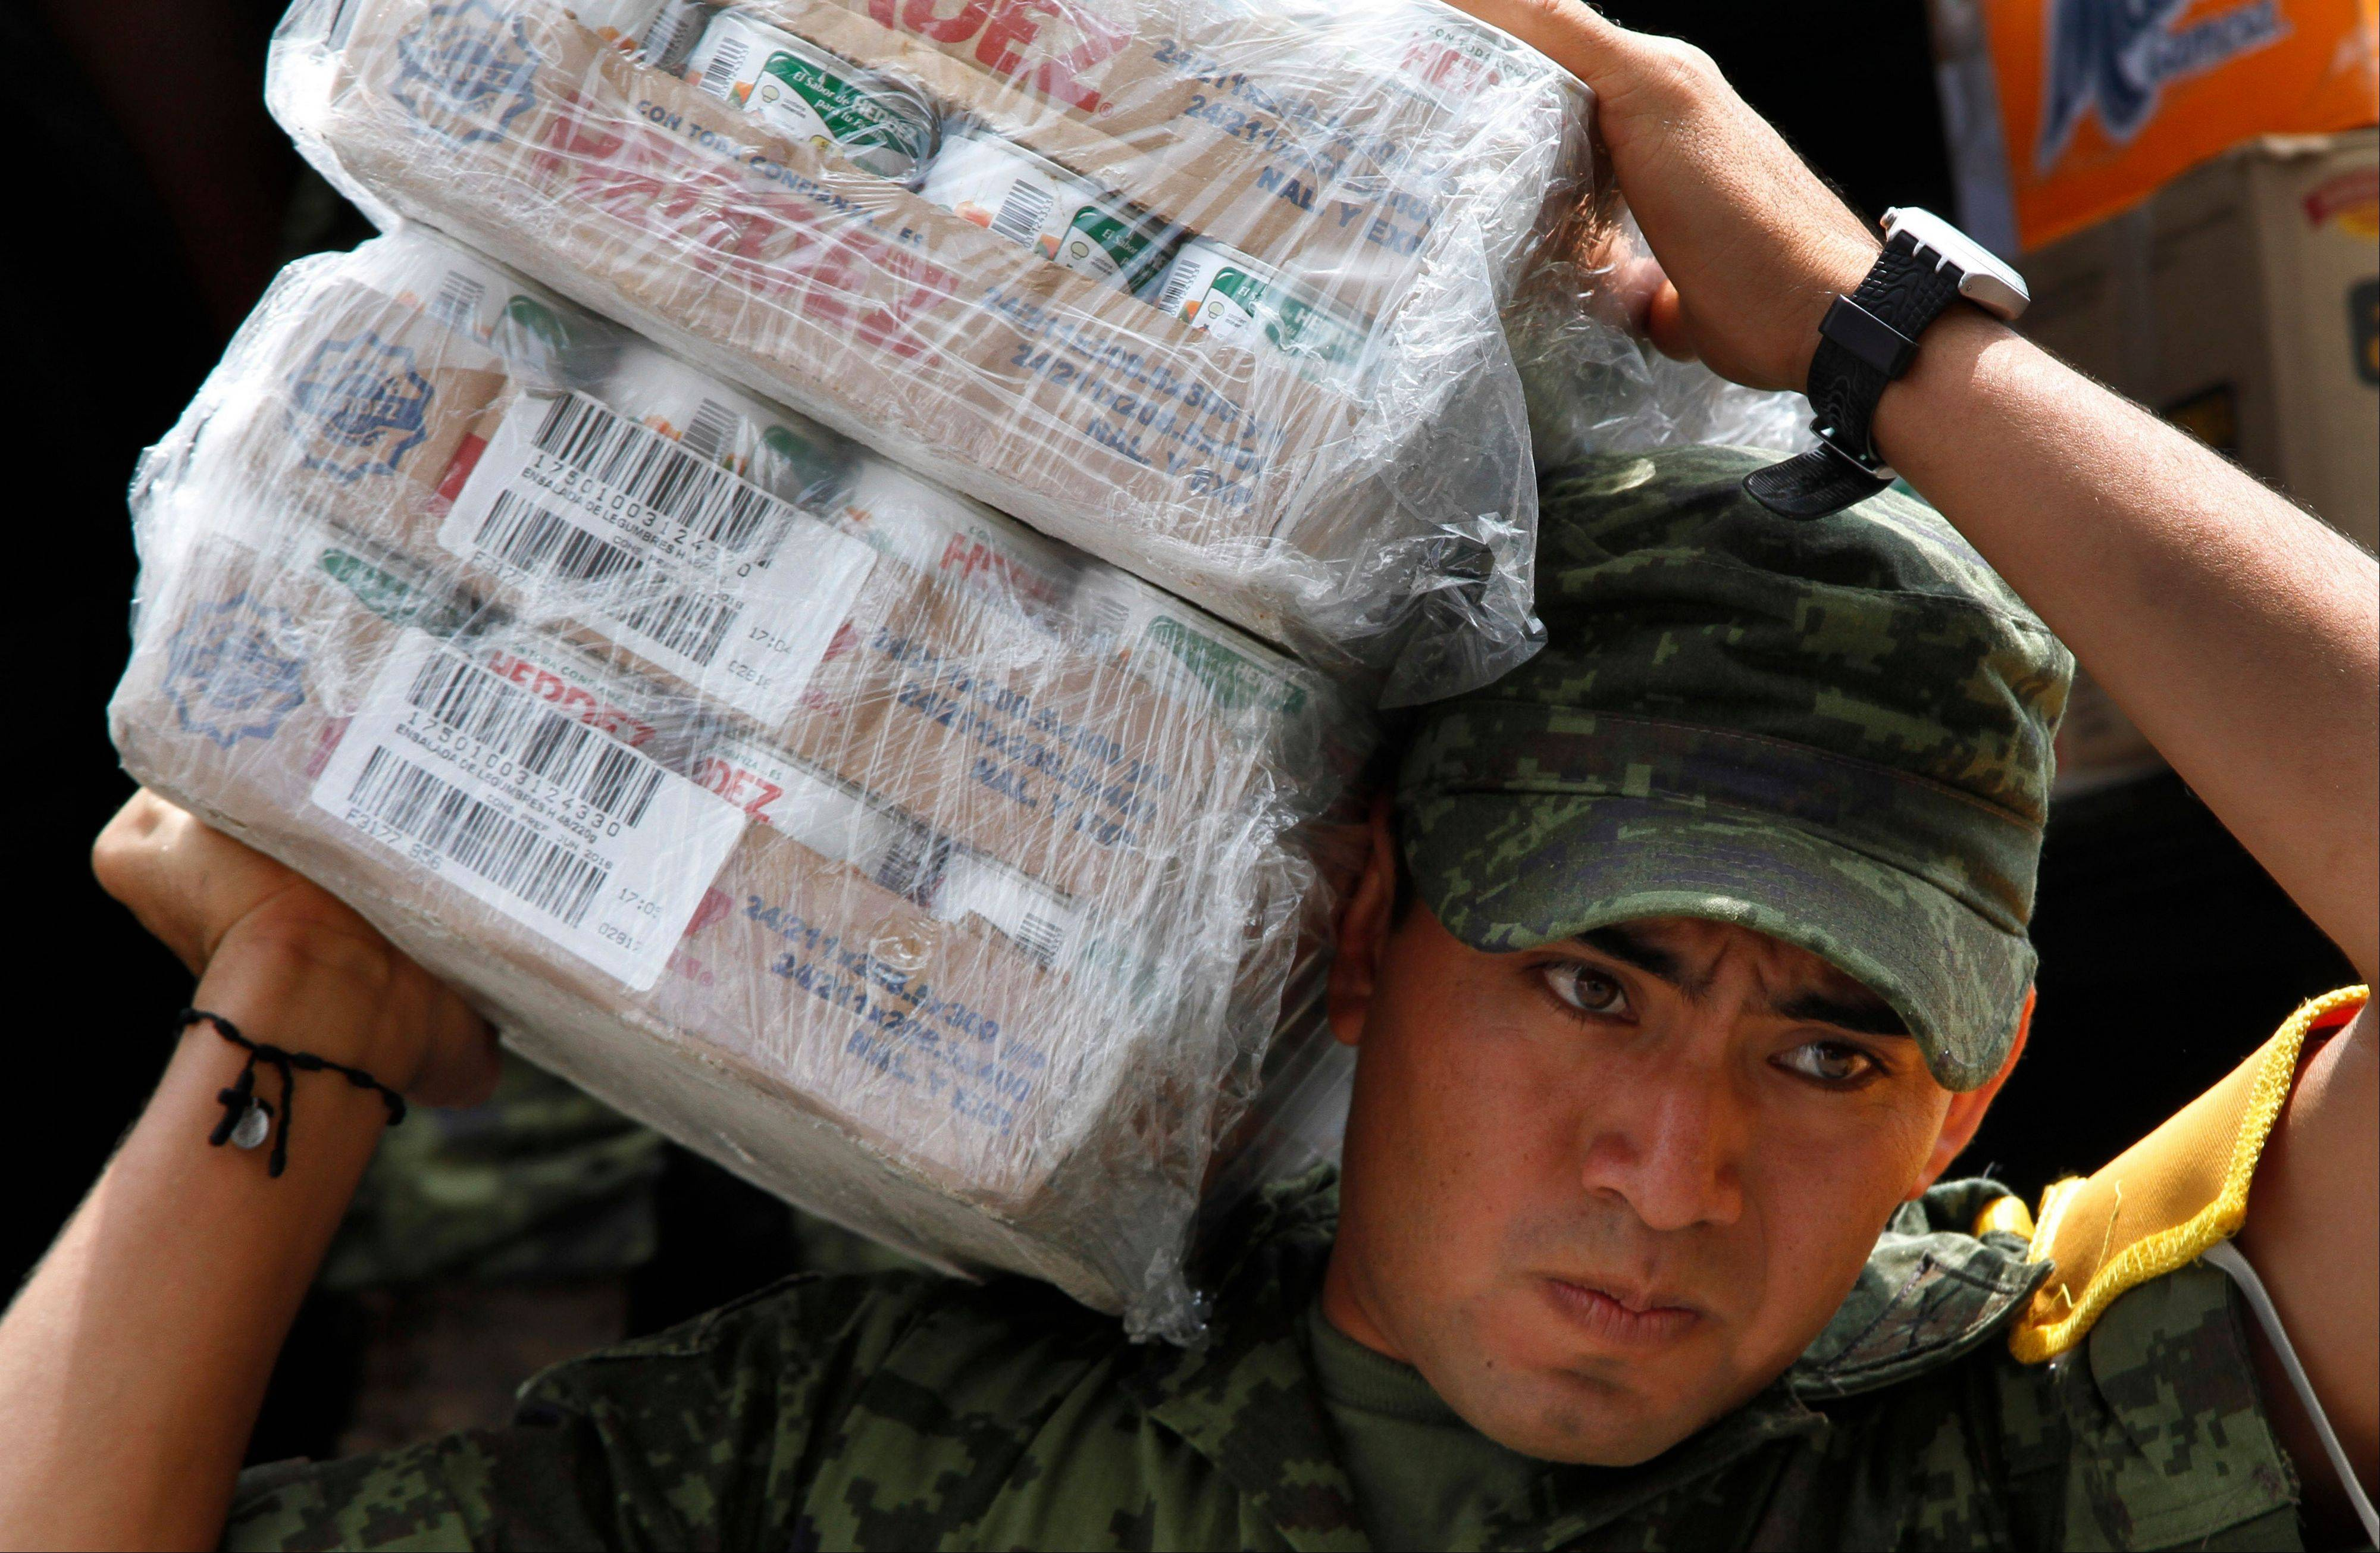 A soldier carries cartons of canned vegetables Friday to a waiting vehicle as part of the humanitarian aid bound for storm victims of Tropical Storm Manuel, in the Zocalo, Mexico City's main plaza.